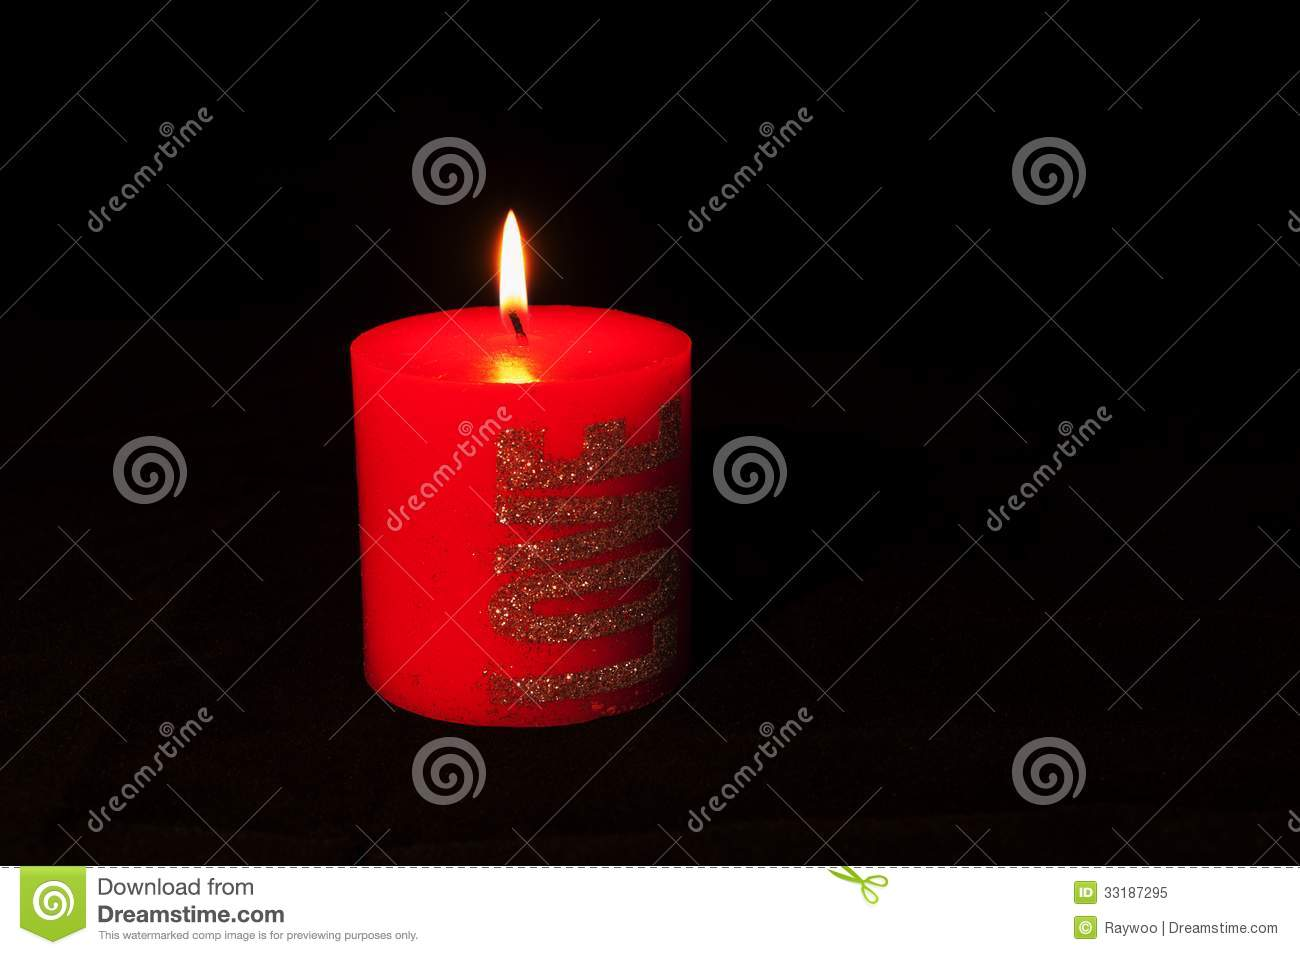 red candle black background - photo #28